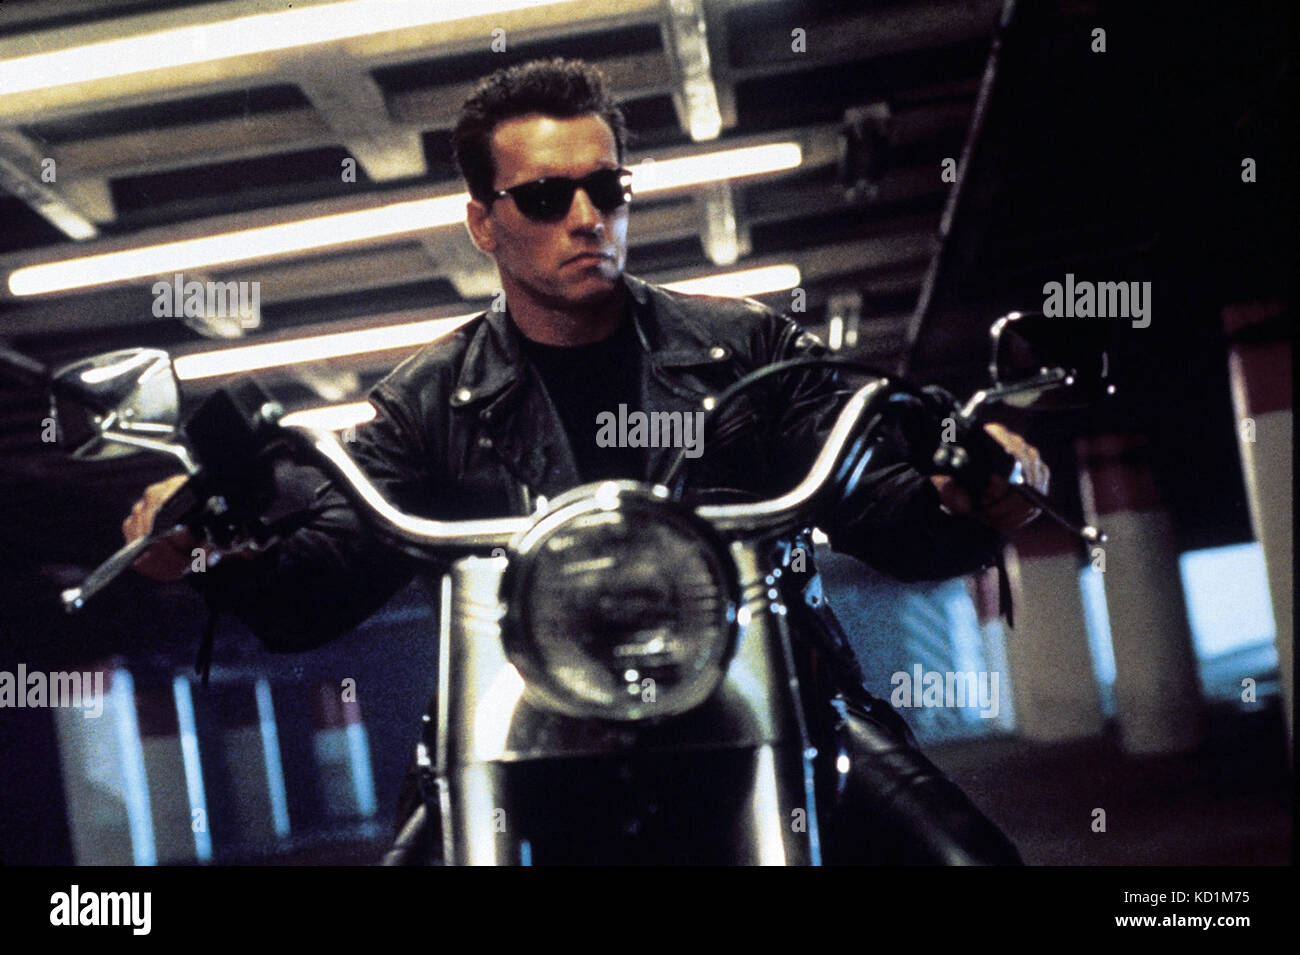 Terminator 2: Judgment Day (also referred to as Terminator 2 or T2) is a 1991 American science-fiction action film - Stock Image